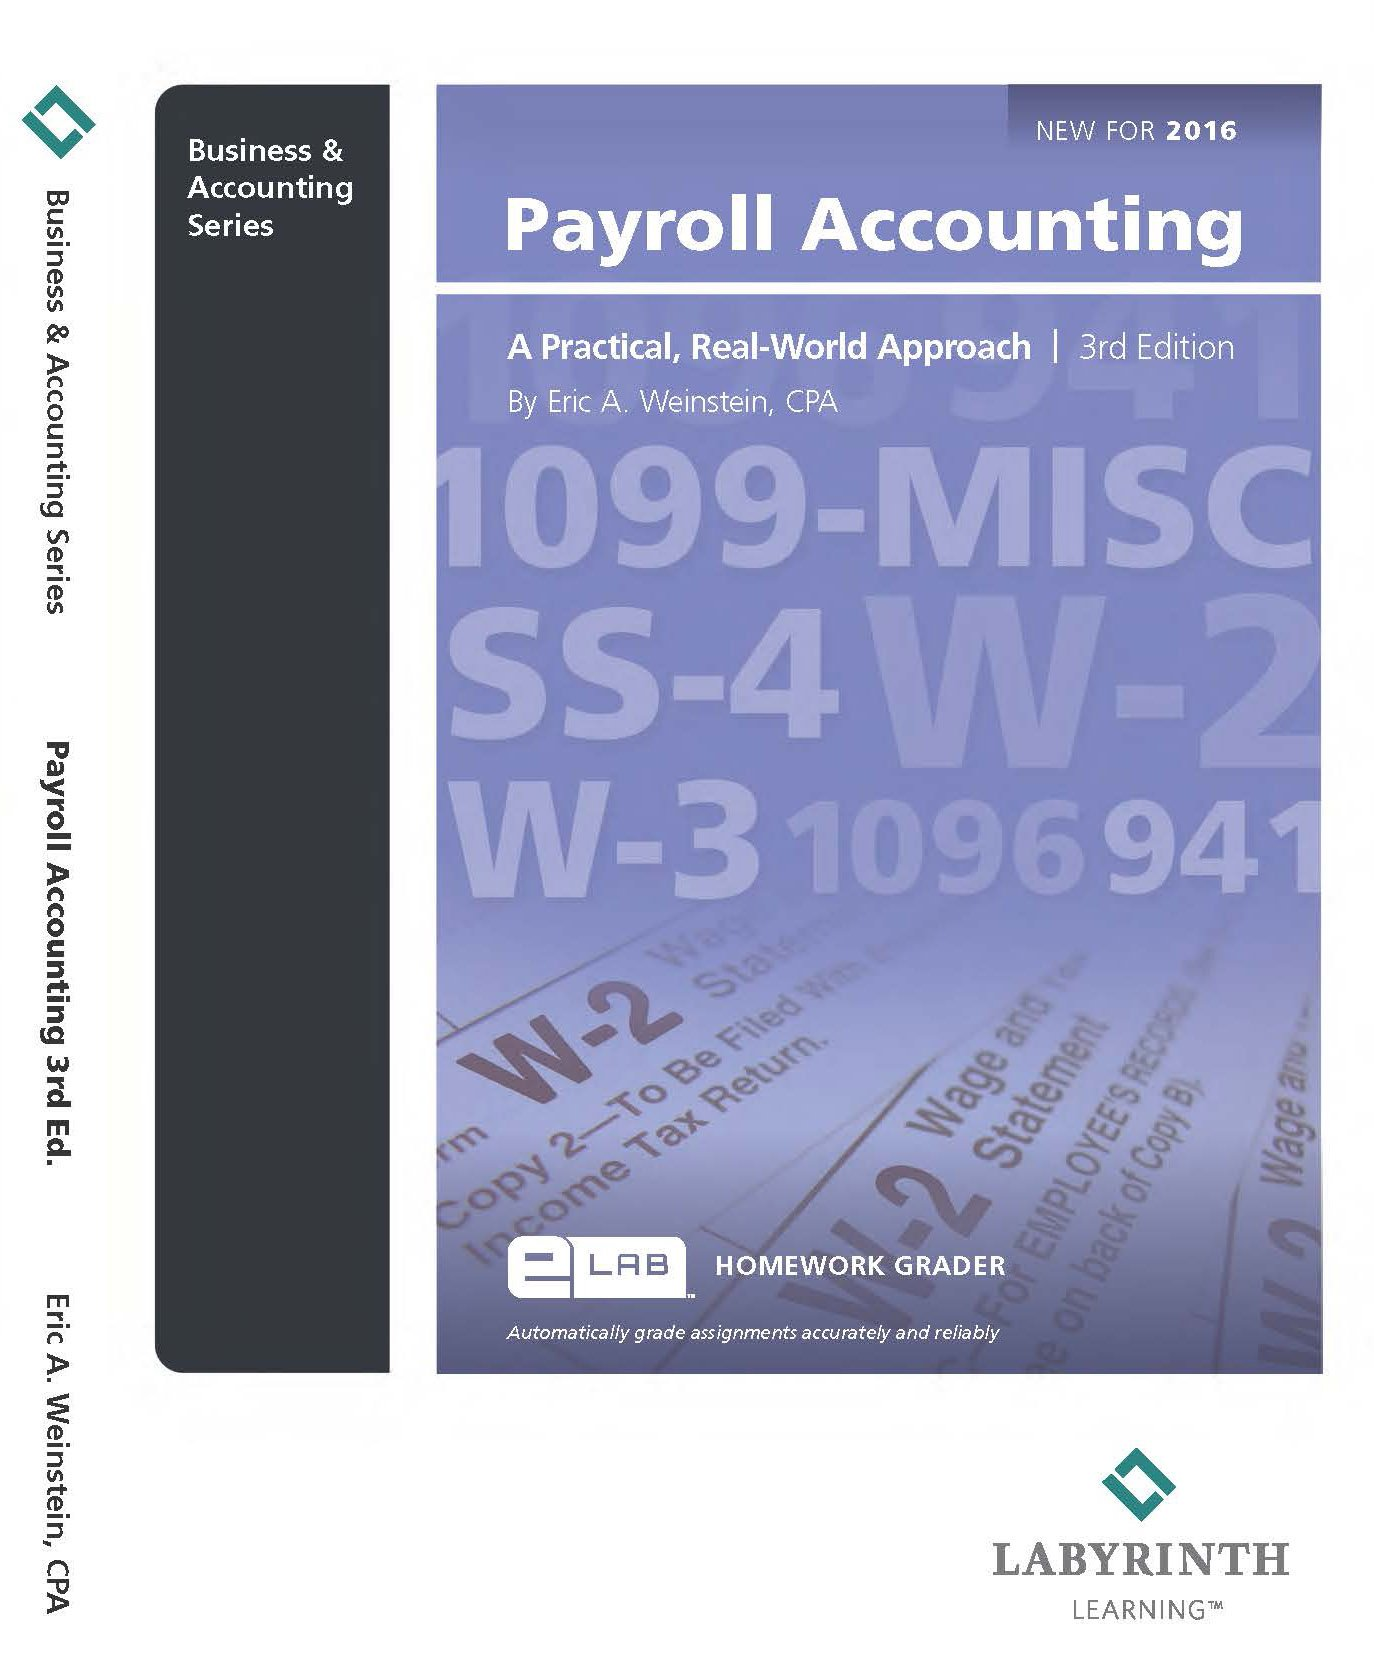 PAYROLL ACCOUNTING: CPA Eric A. Weinstein: 9781591368045: Amazon.com: Books